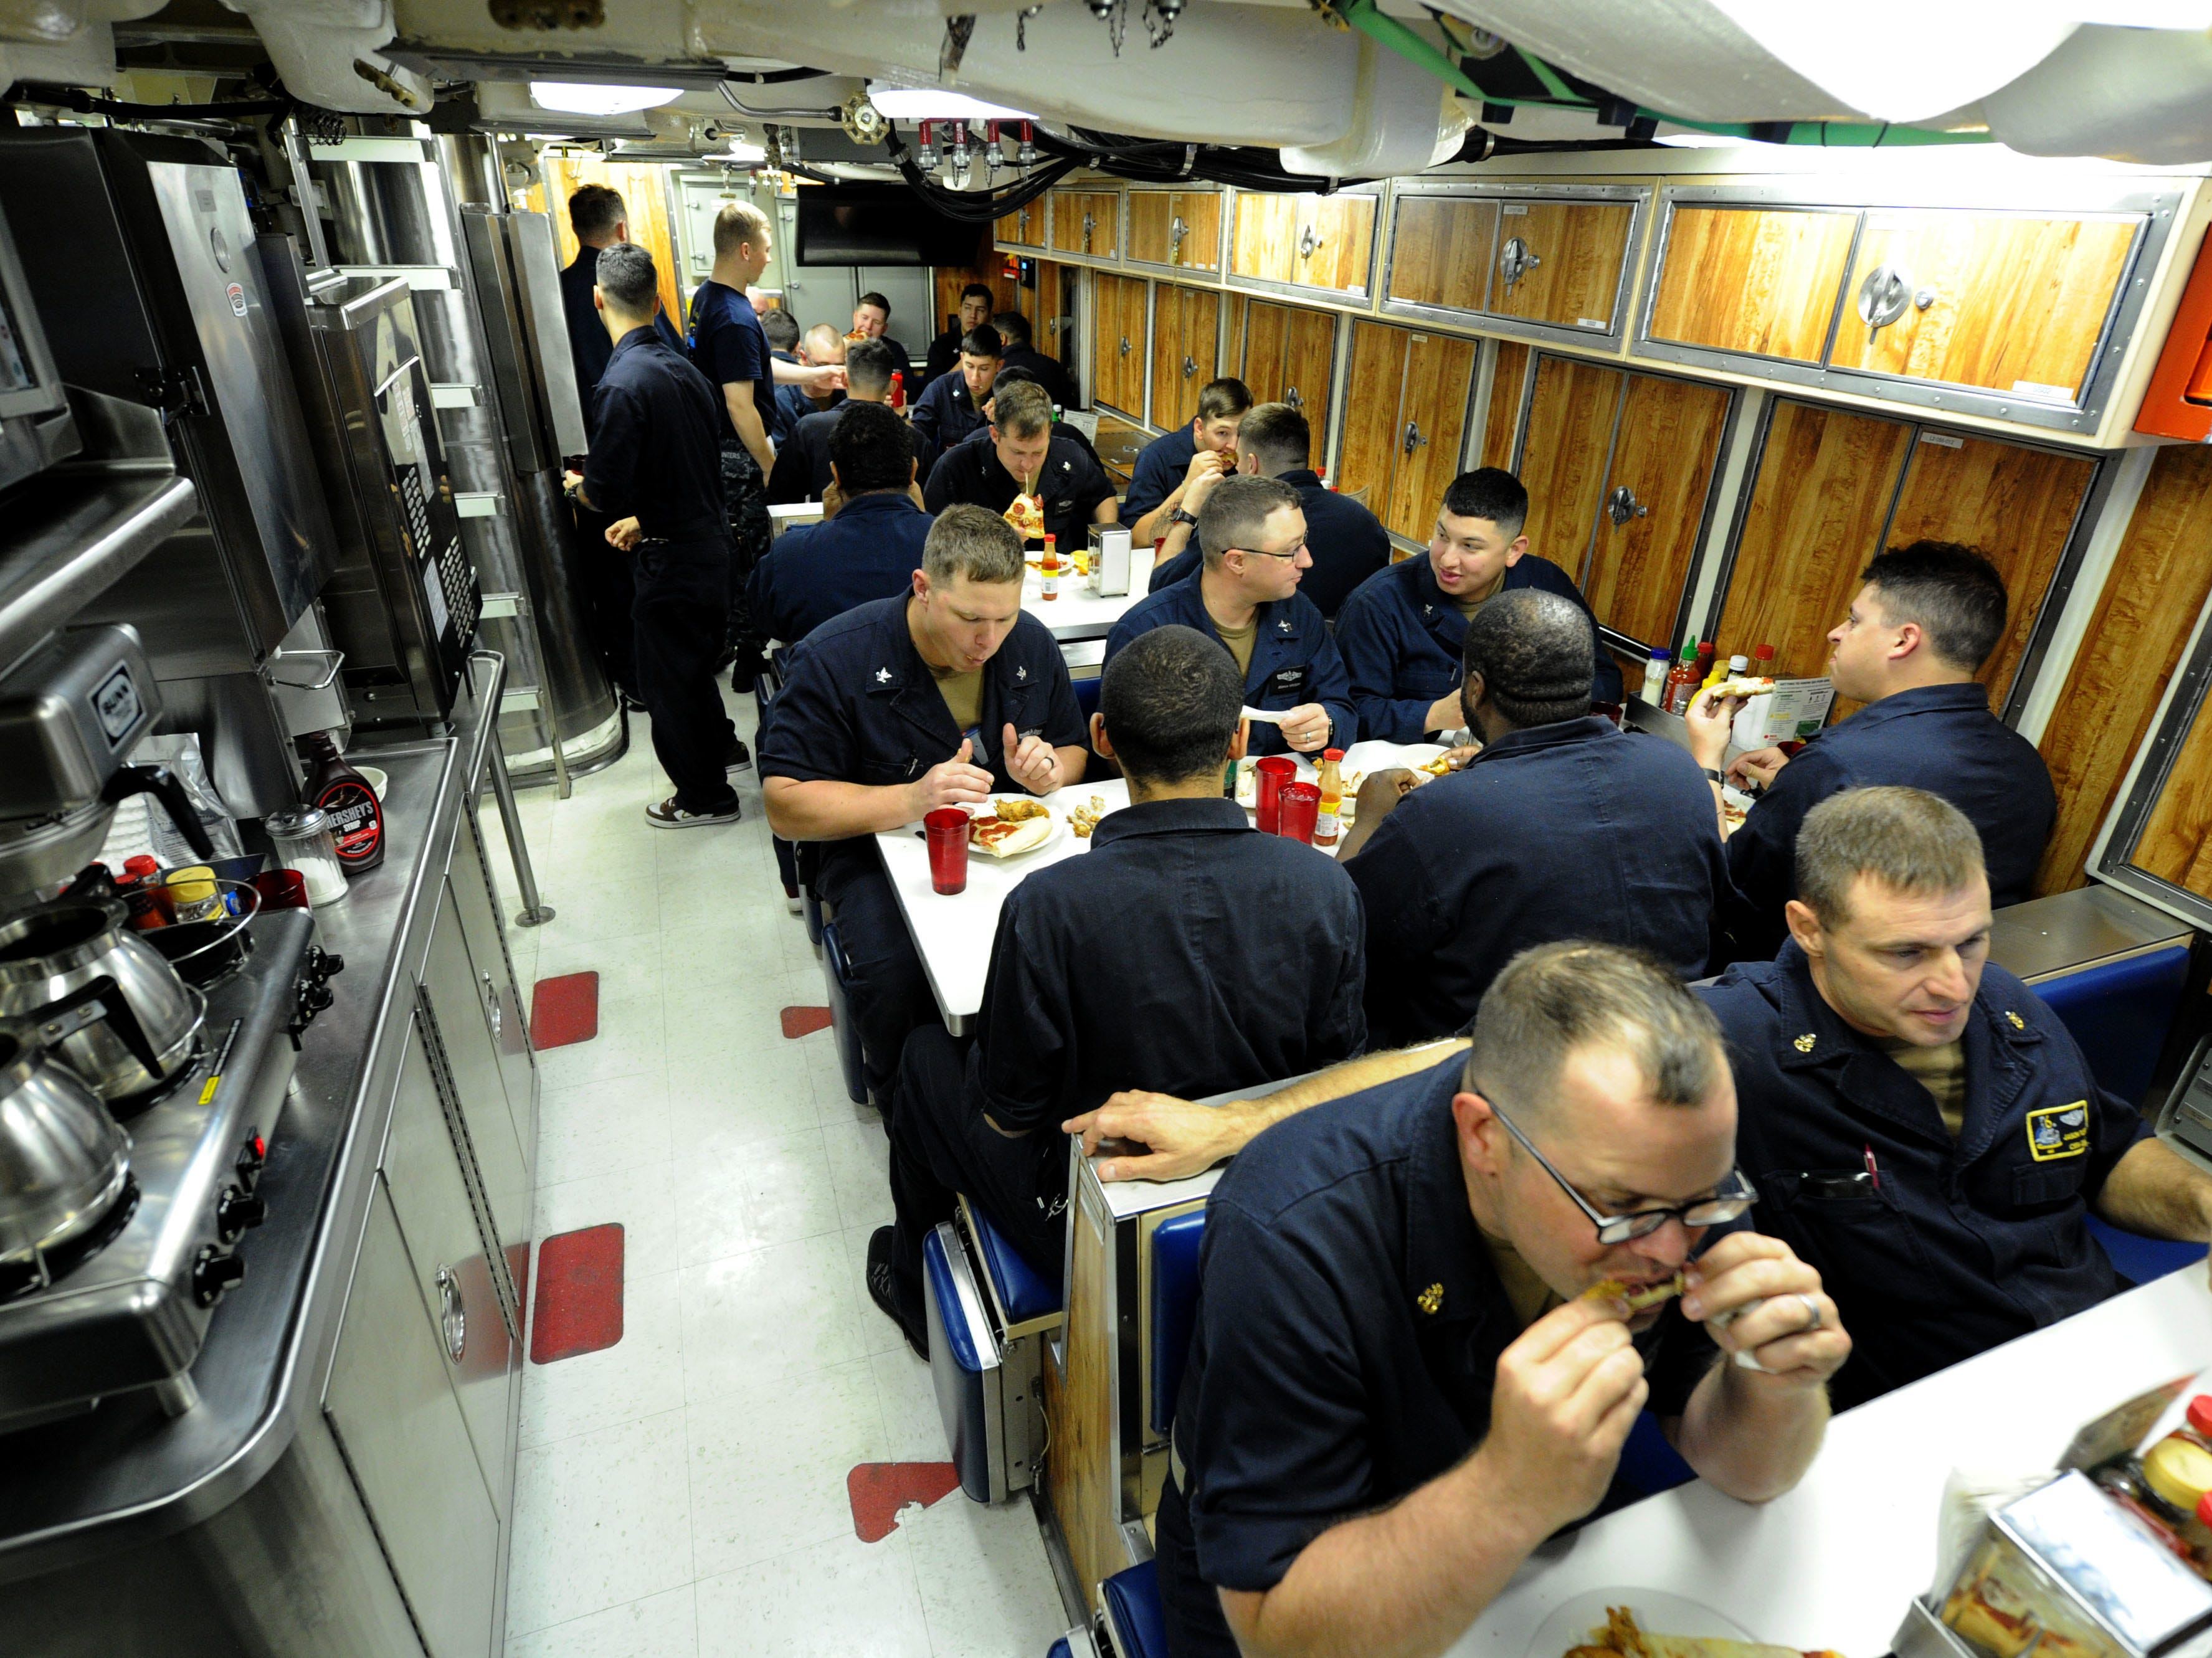 Sailors assigned to Pre-Commissioning Unit Indiana (SSN 789) eat dinner in the crew's mess while underway, June 23, 2018. Indiana is the 16th Virginia-class fast attack submarine and is scheduled to be commissioned Sept. 29, 2018.  (U.S. Navy photo by Chief Mass Communication Specialist Darryl Wood/Released)